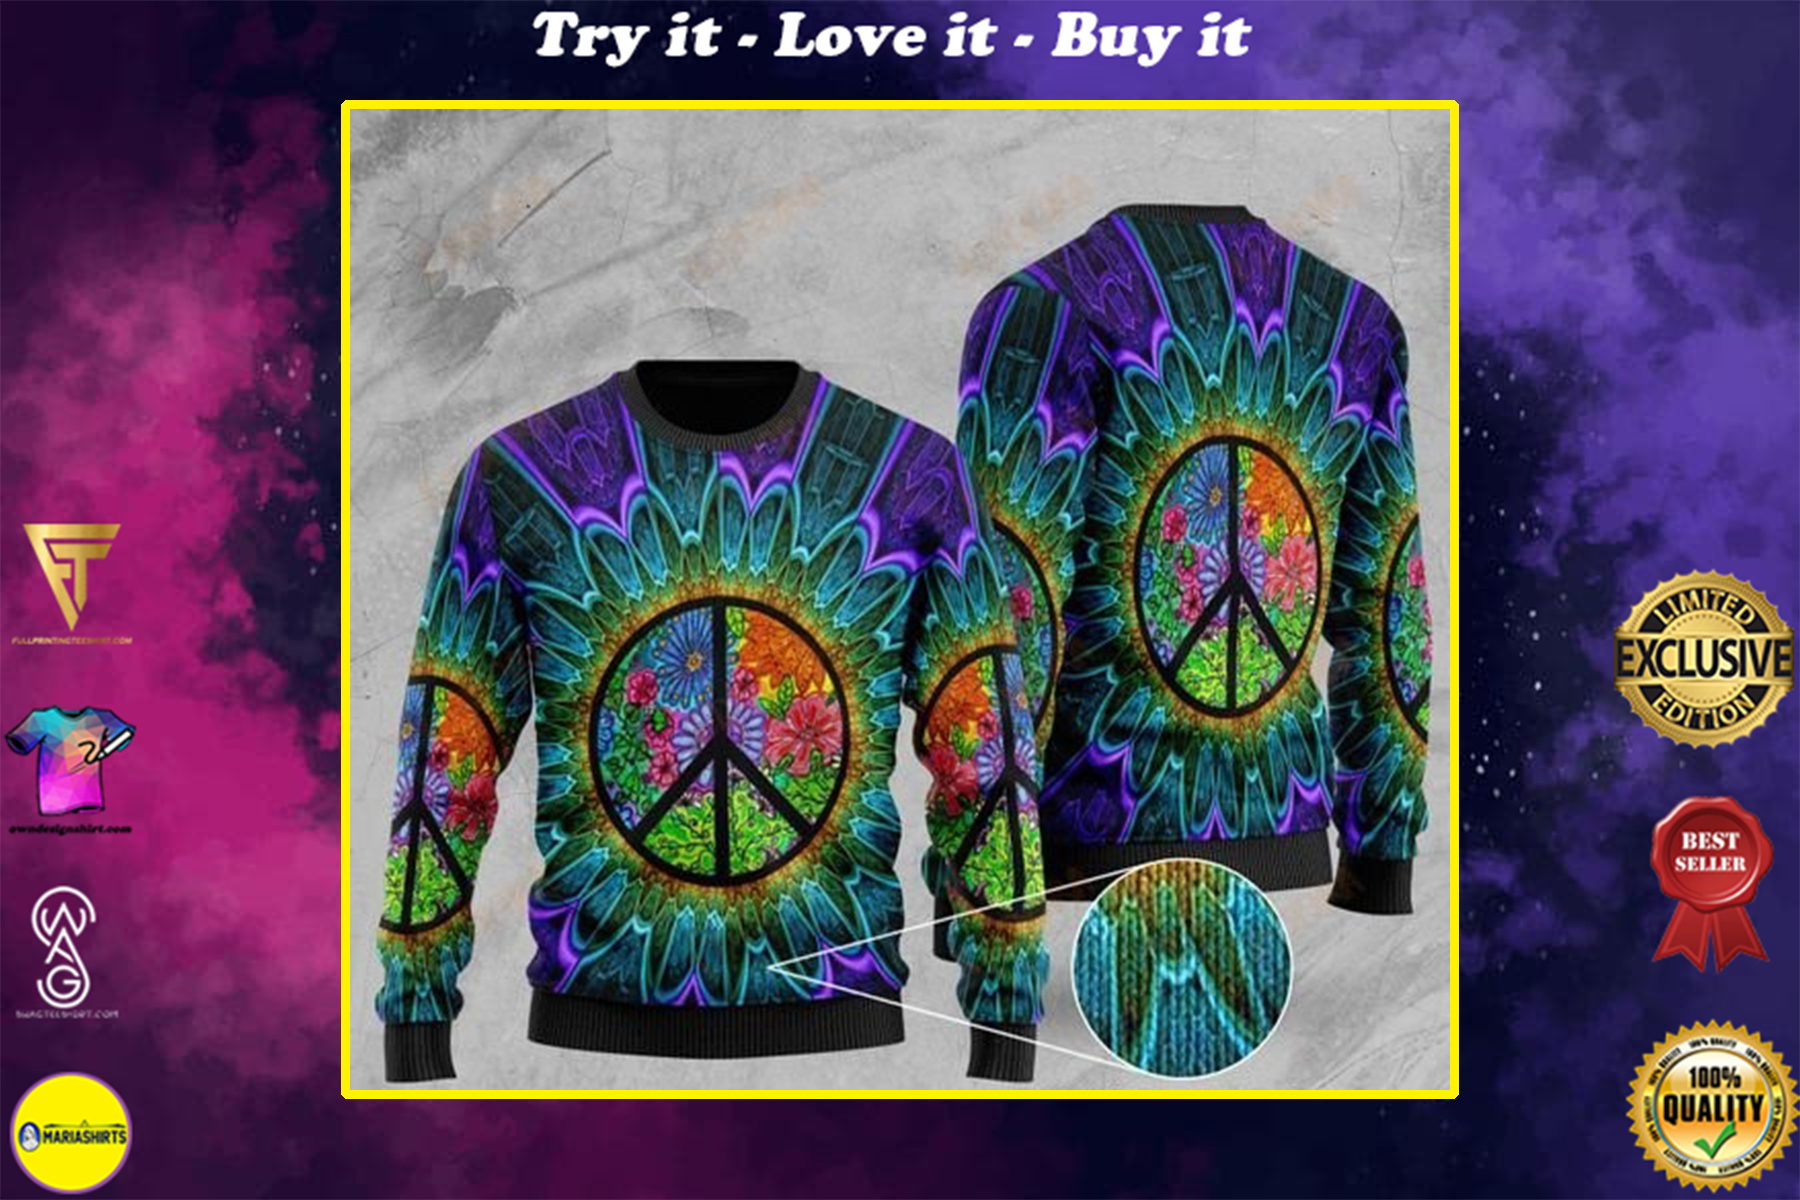 [highest selling] hippie symbol tie dye pattern full printing christmas ugly sweater - maria